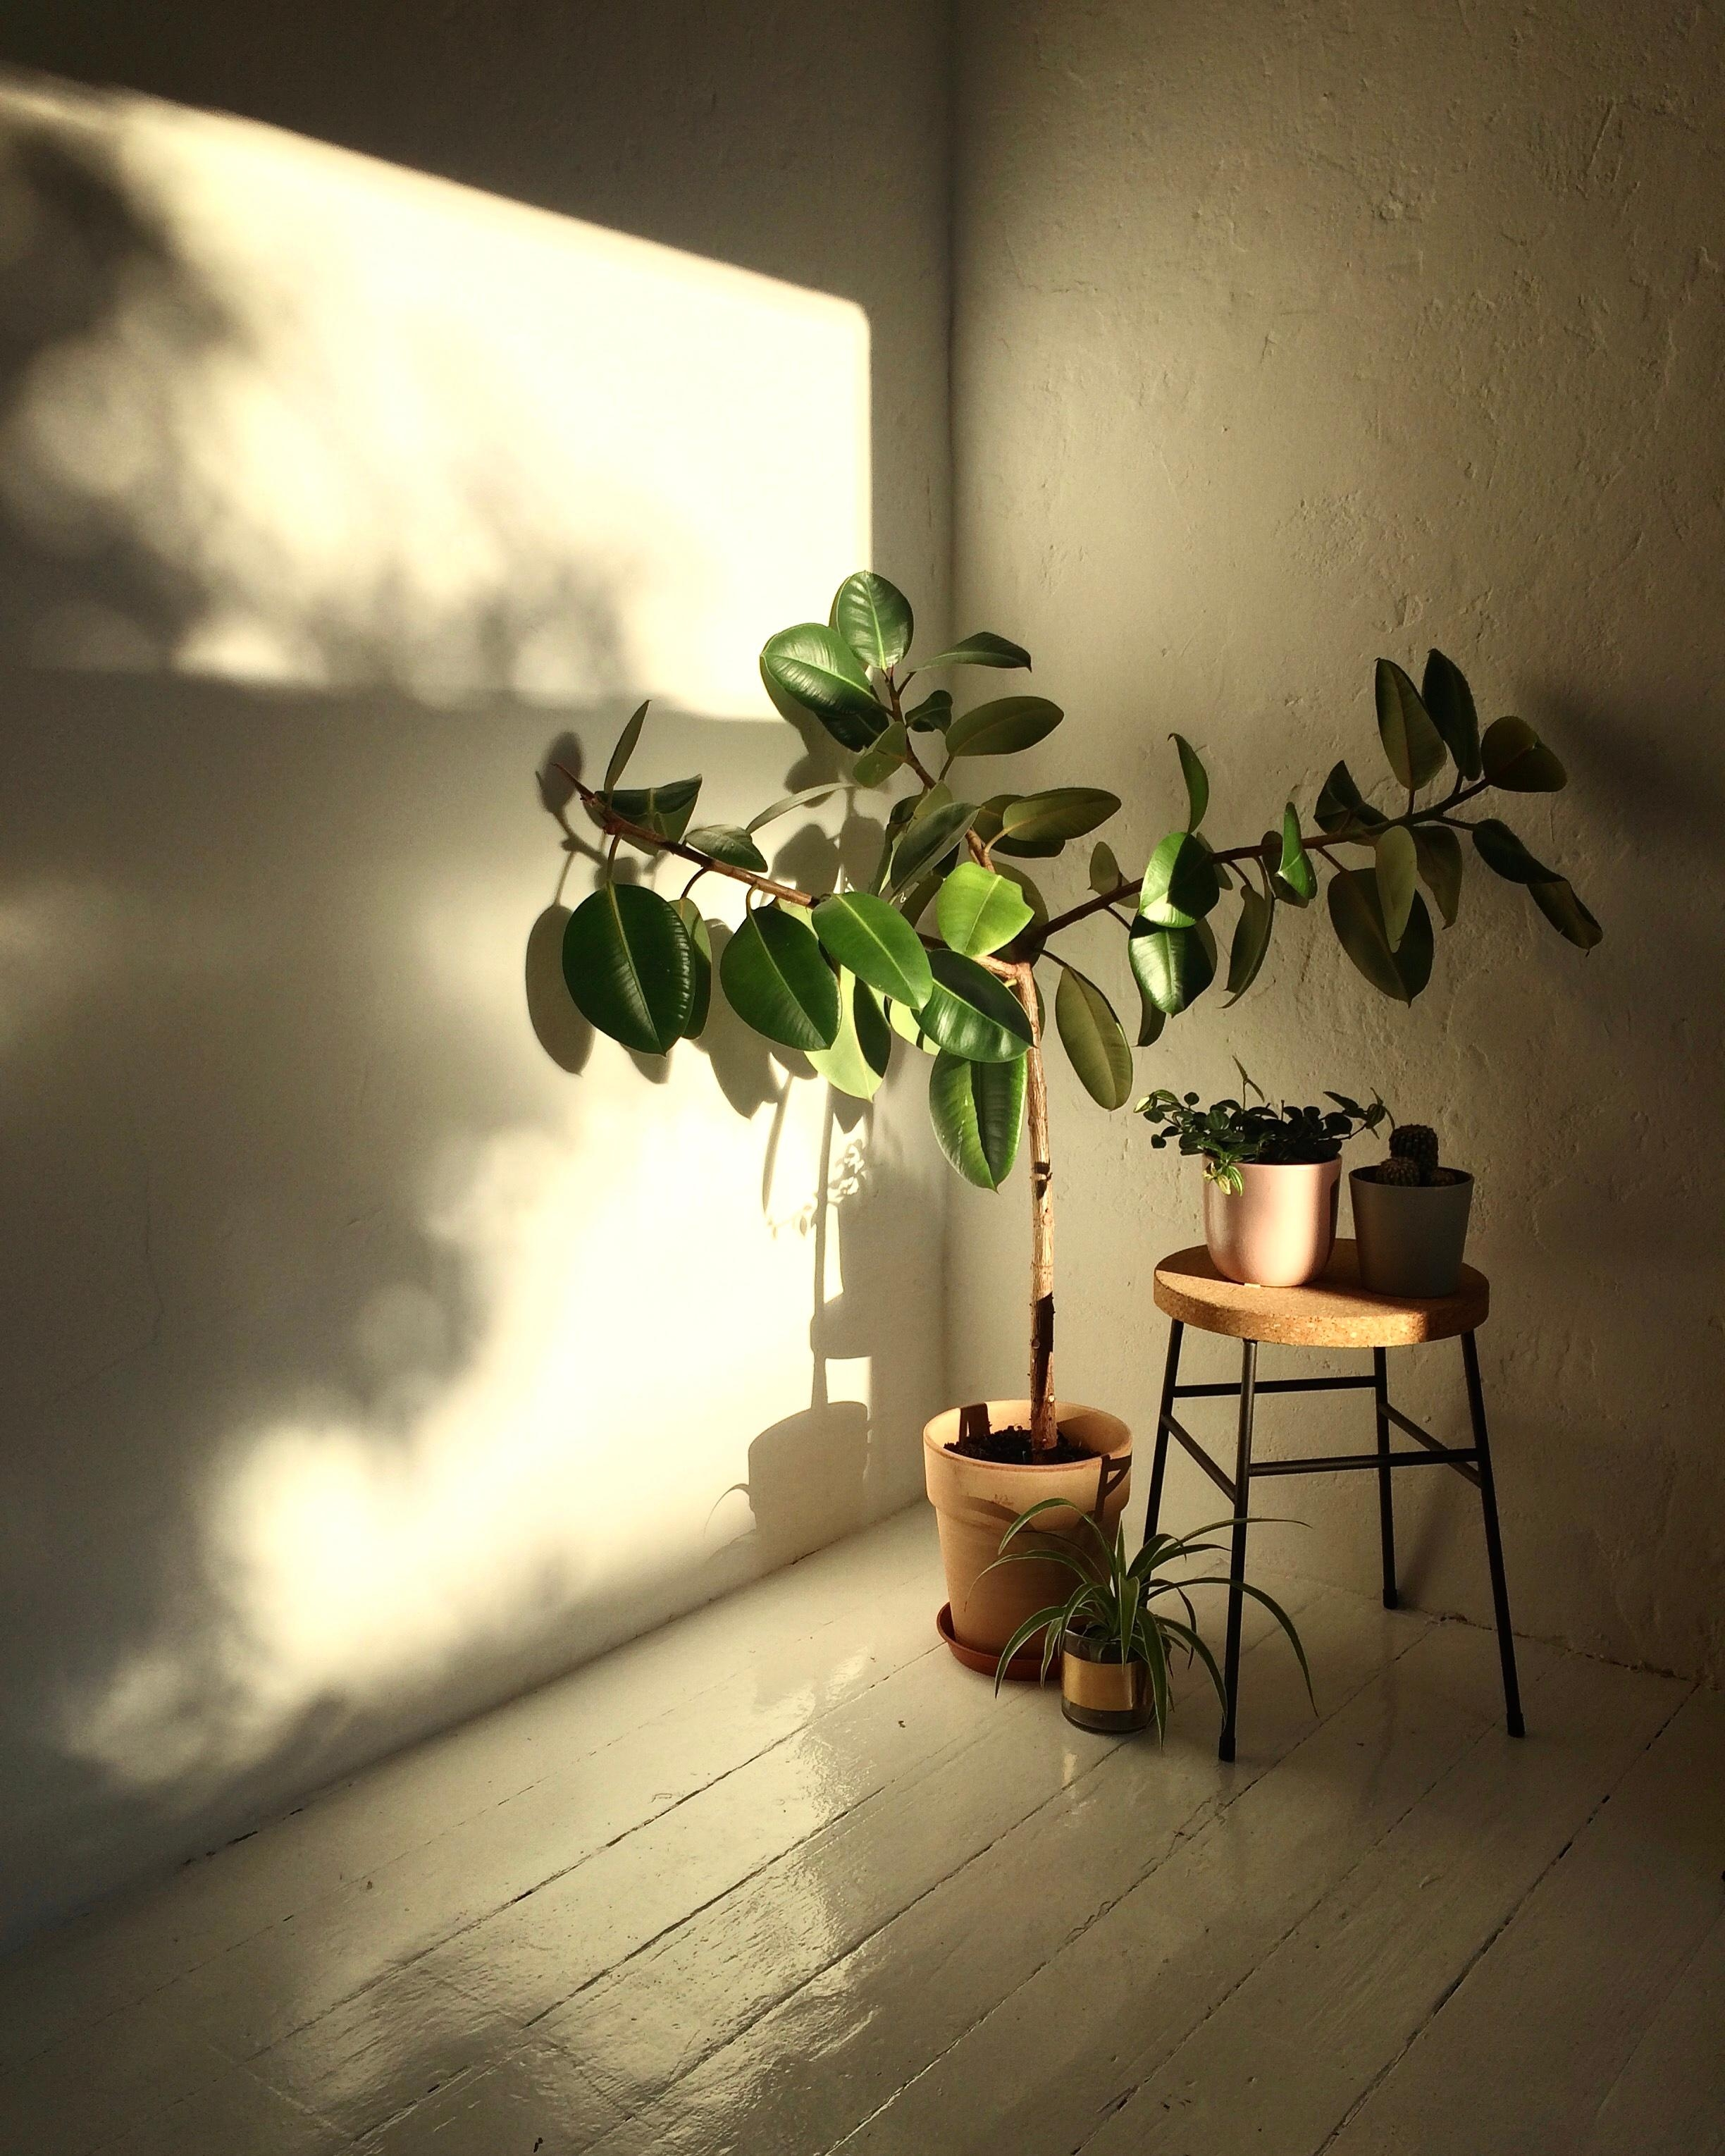 #home #pflanzenliebe #urbanjungle #plantlove #plants #interior #light